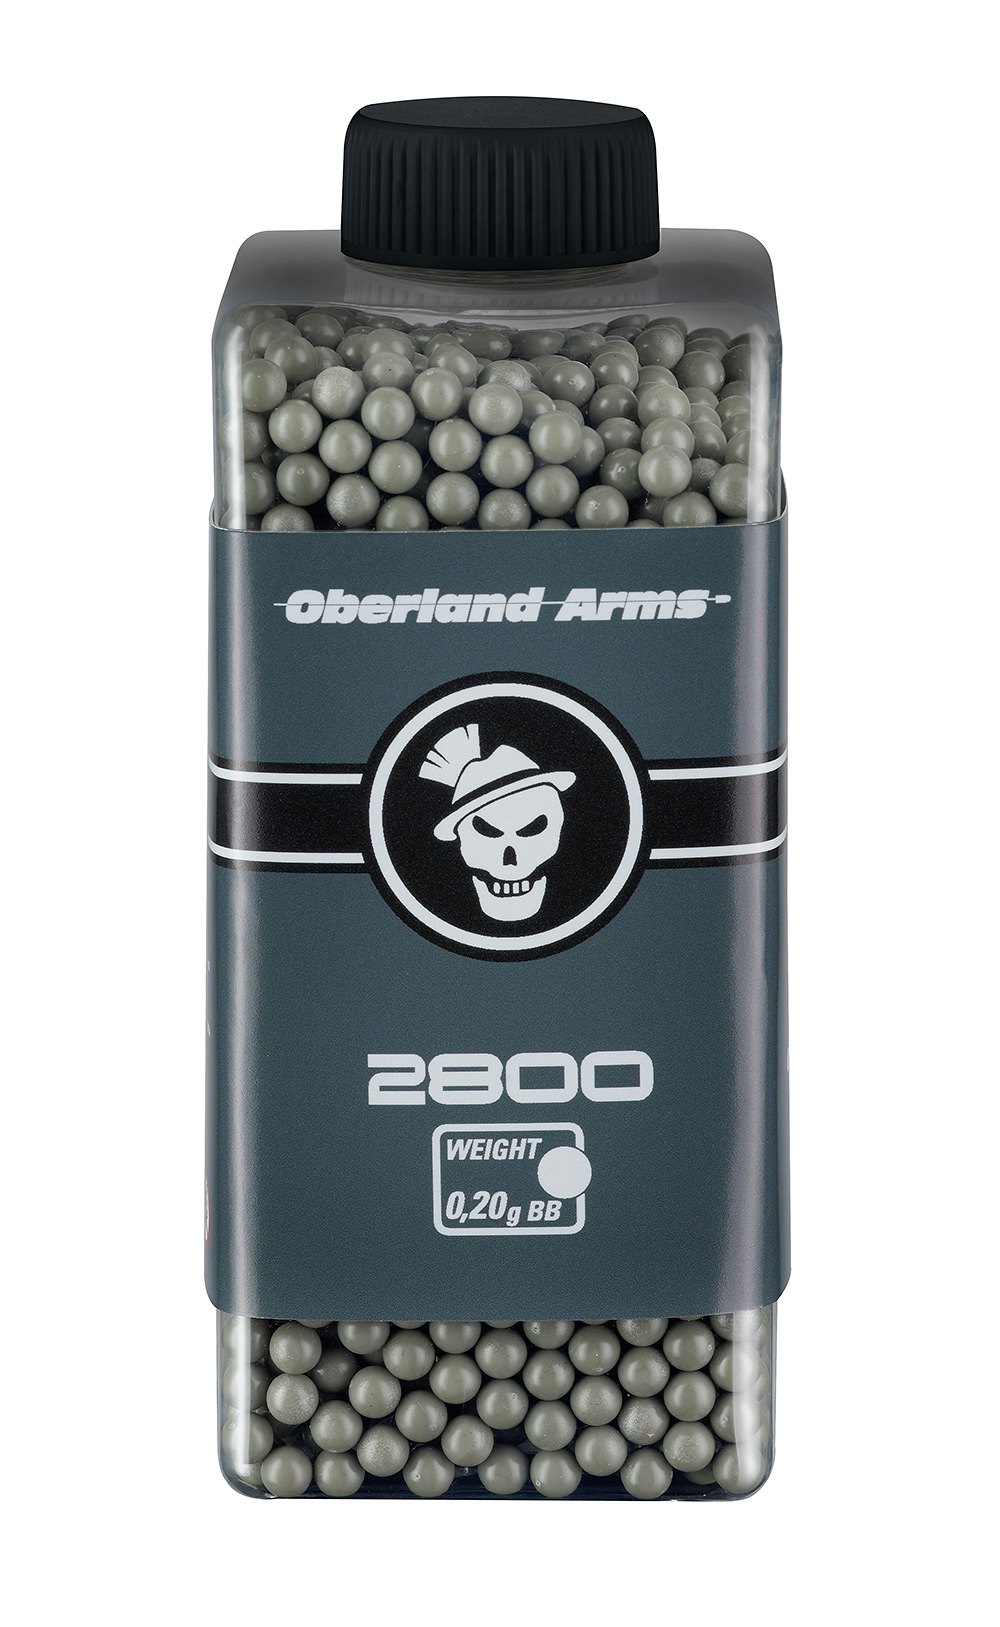 Oberland Black Label BBs 2800 rounds, 0,20g